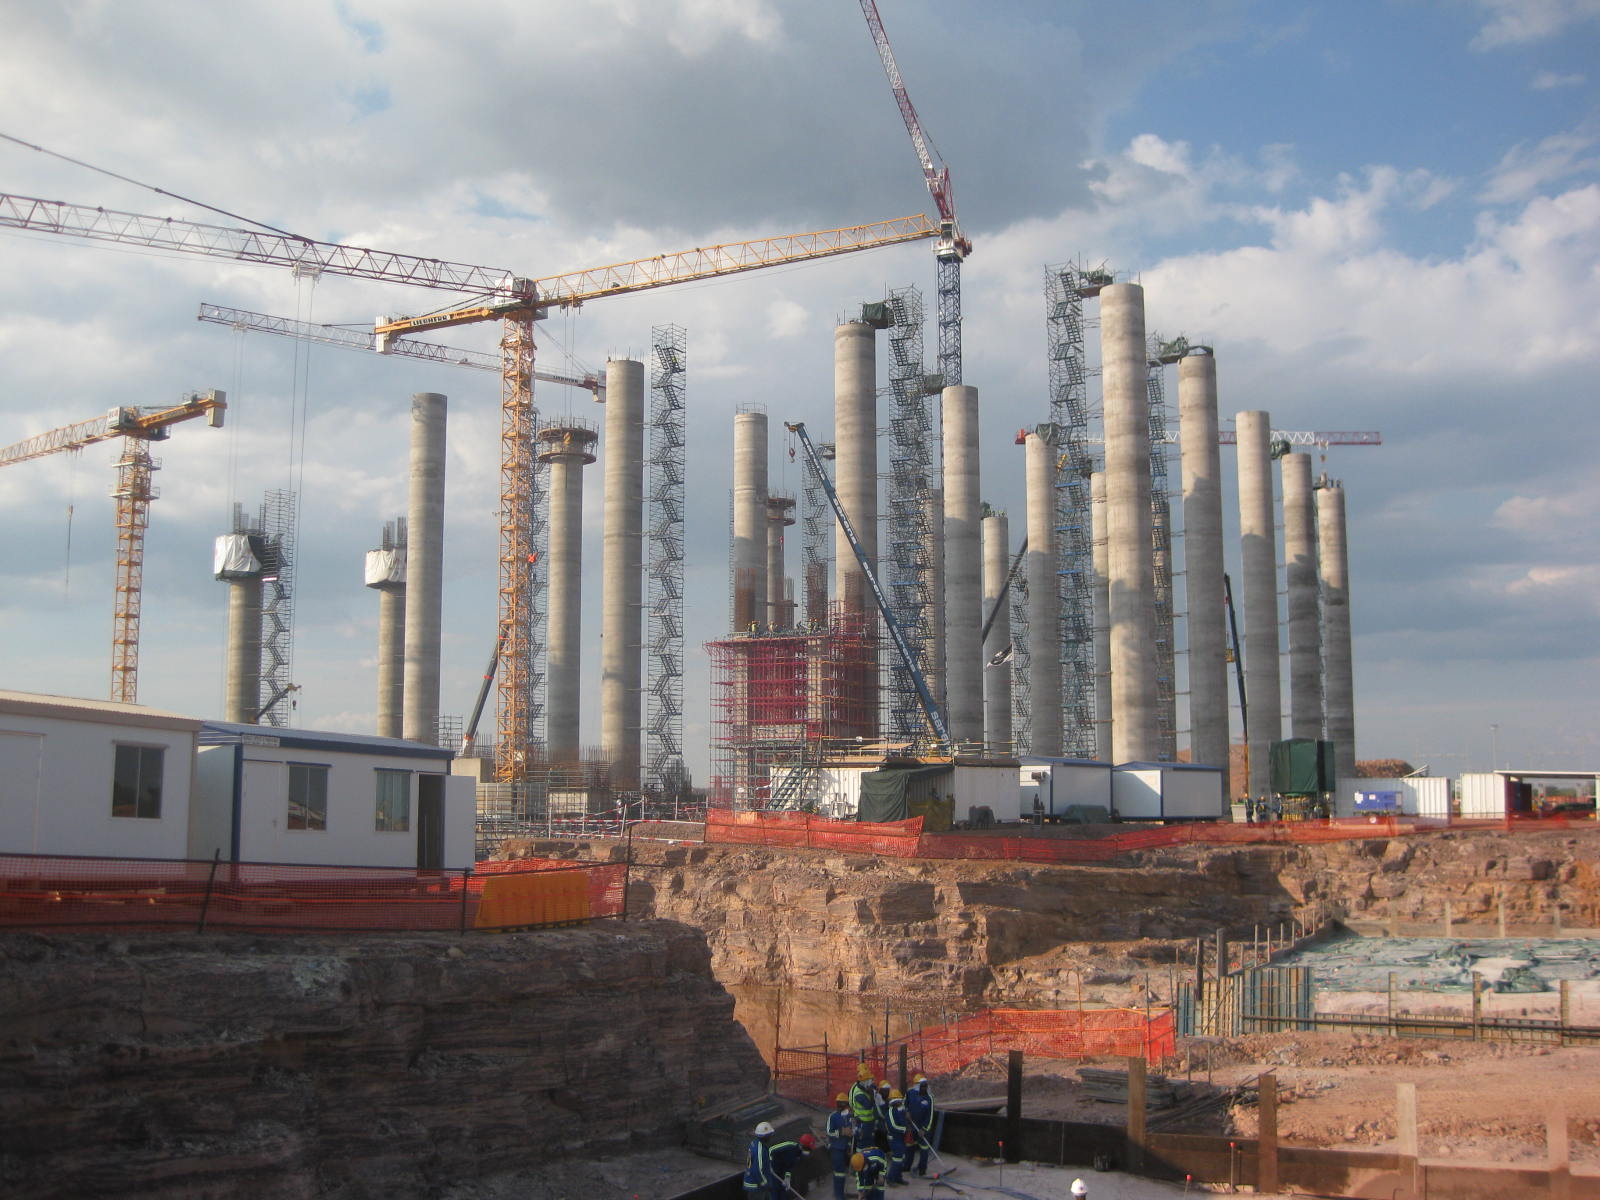 Construction at Medupi Power Station